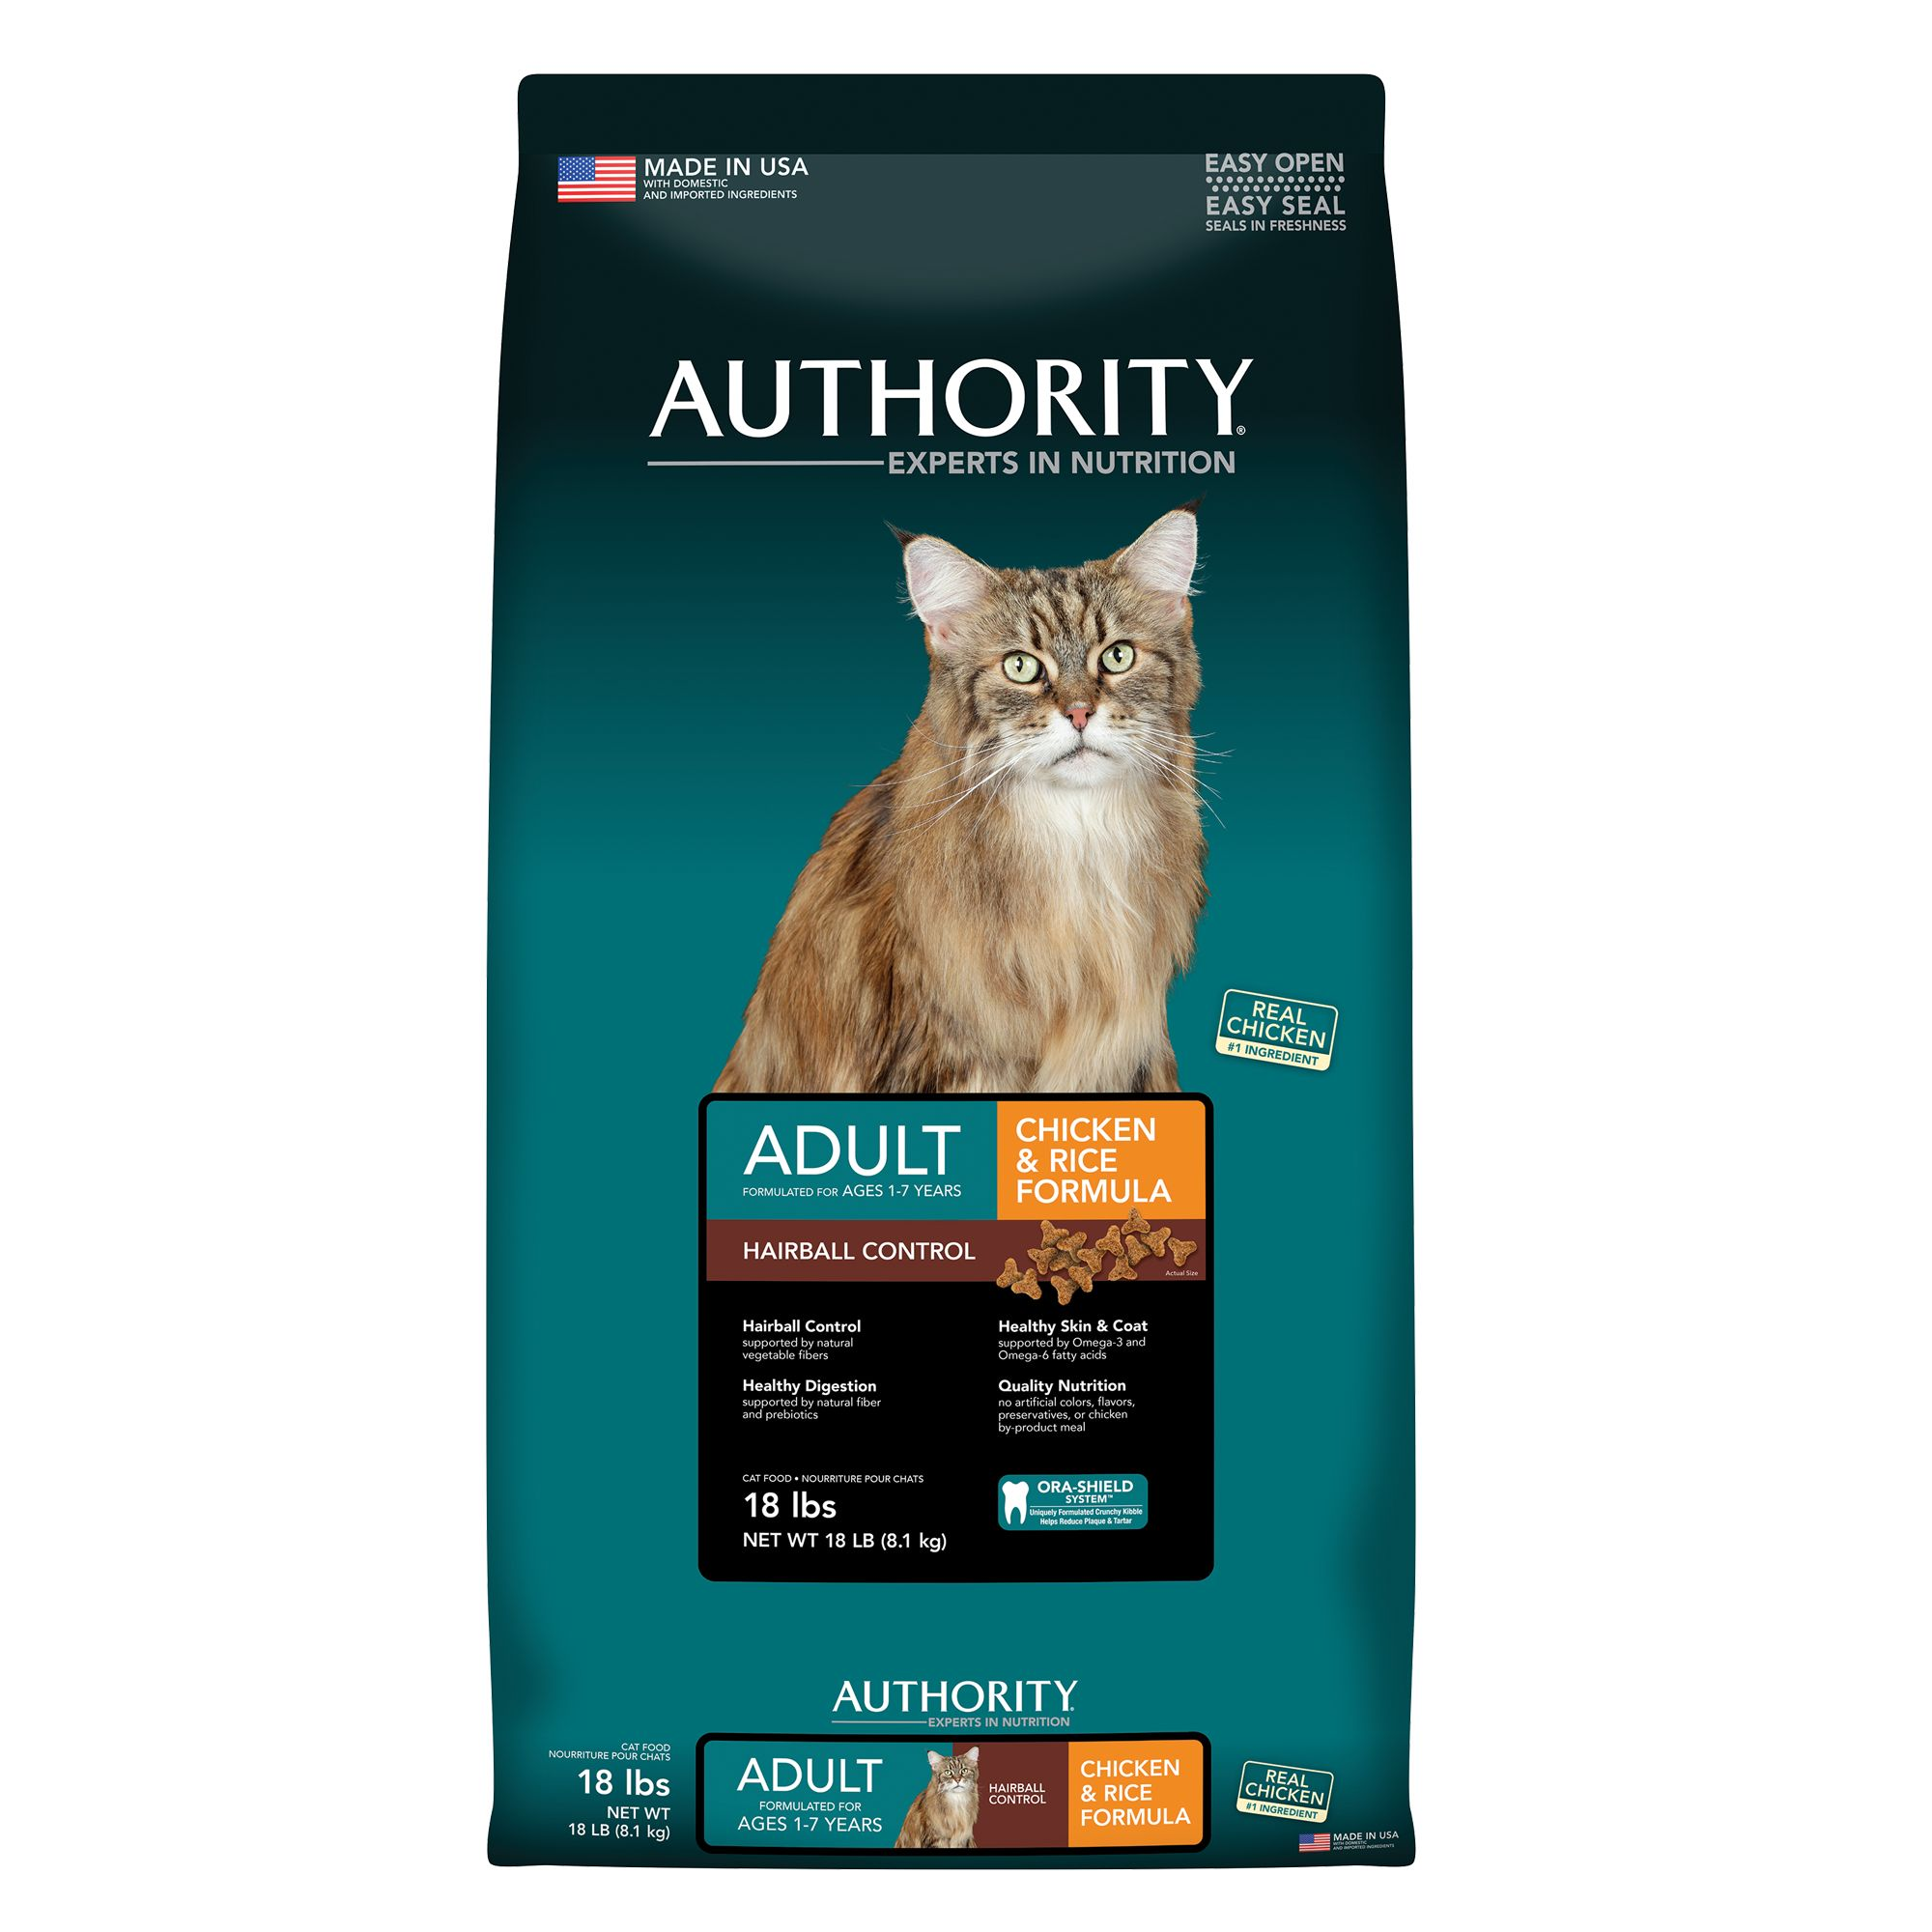 Authority Hairball Control Adult Cat Food size: 18 Lb 5220415